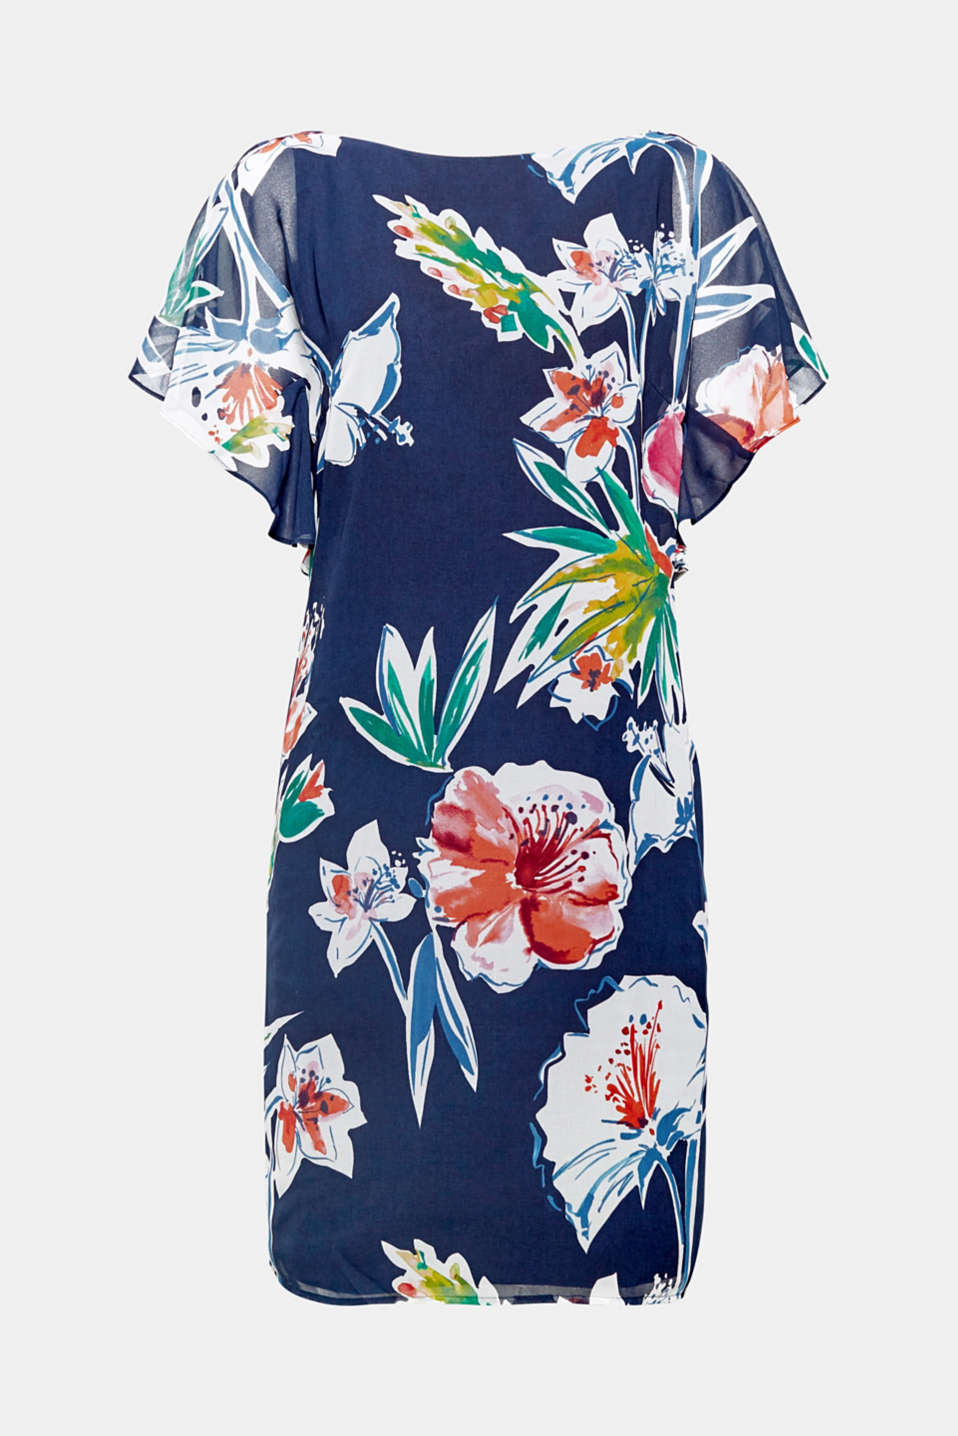 The timeless, straight cut, the colourful floral print and fashionable flounce sleeves make this dress a feminine summer highlight.